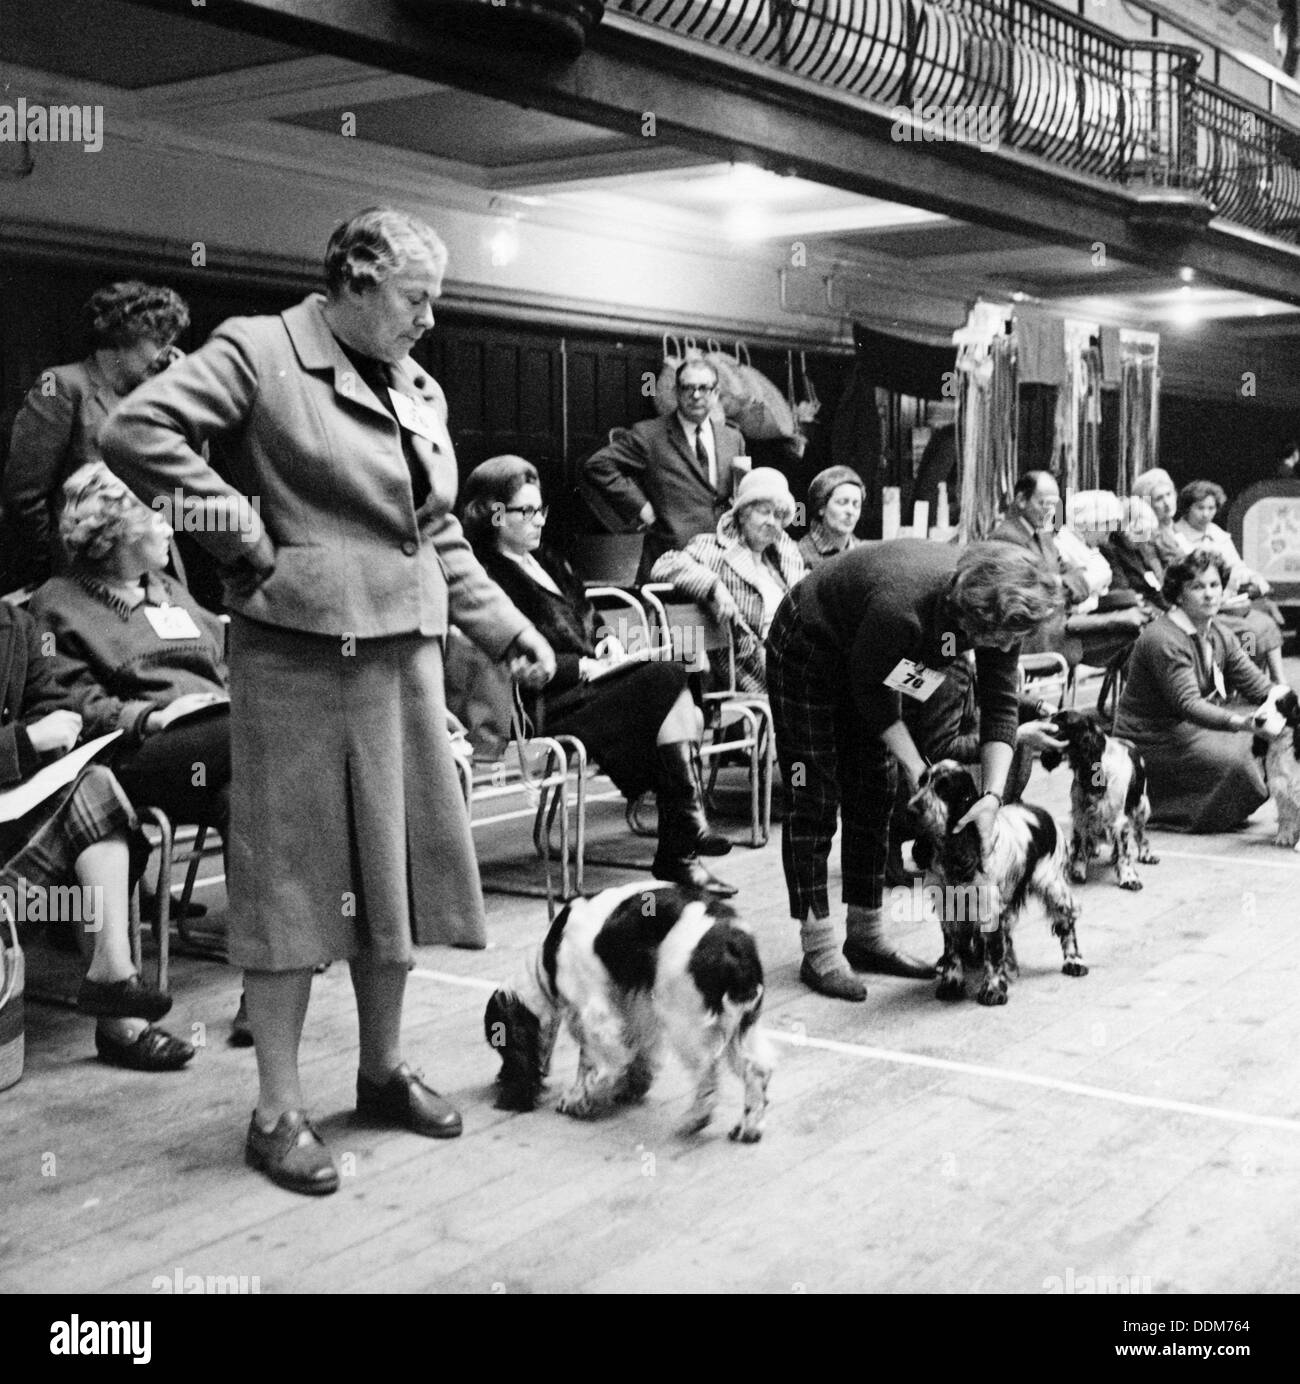 Owners parading their dogs at a London dog show, possibly Crufts, 1964. Artist: Henry Grant - Stock Image